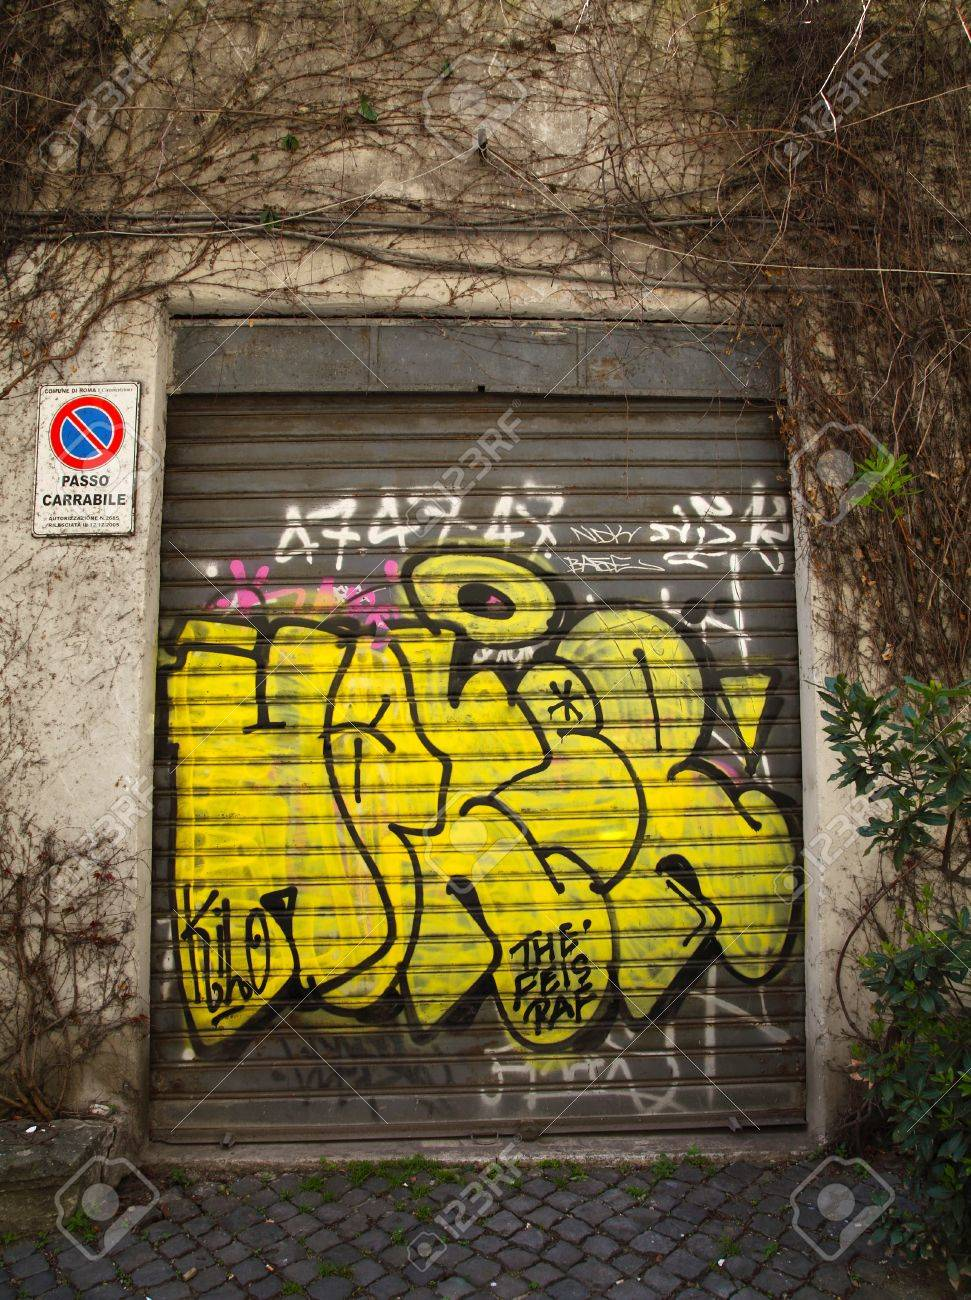 Graffiti Art On Doors In Rome Street Stock Photo, Picture And ...